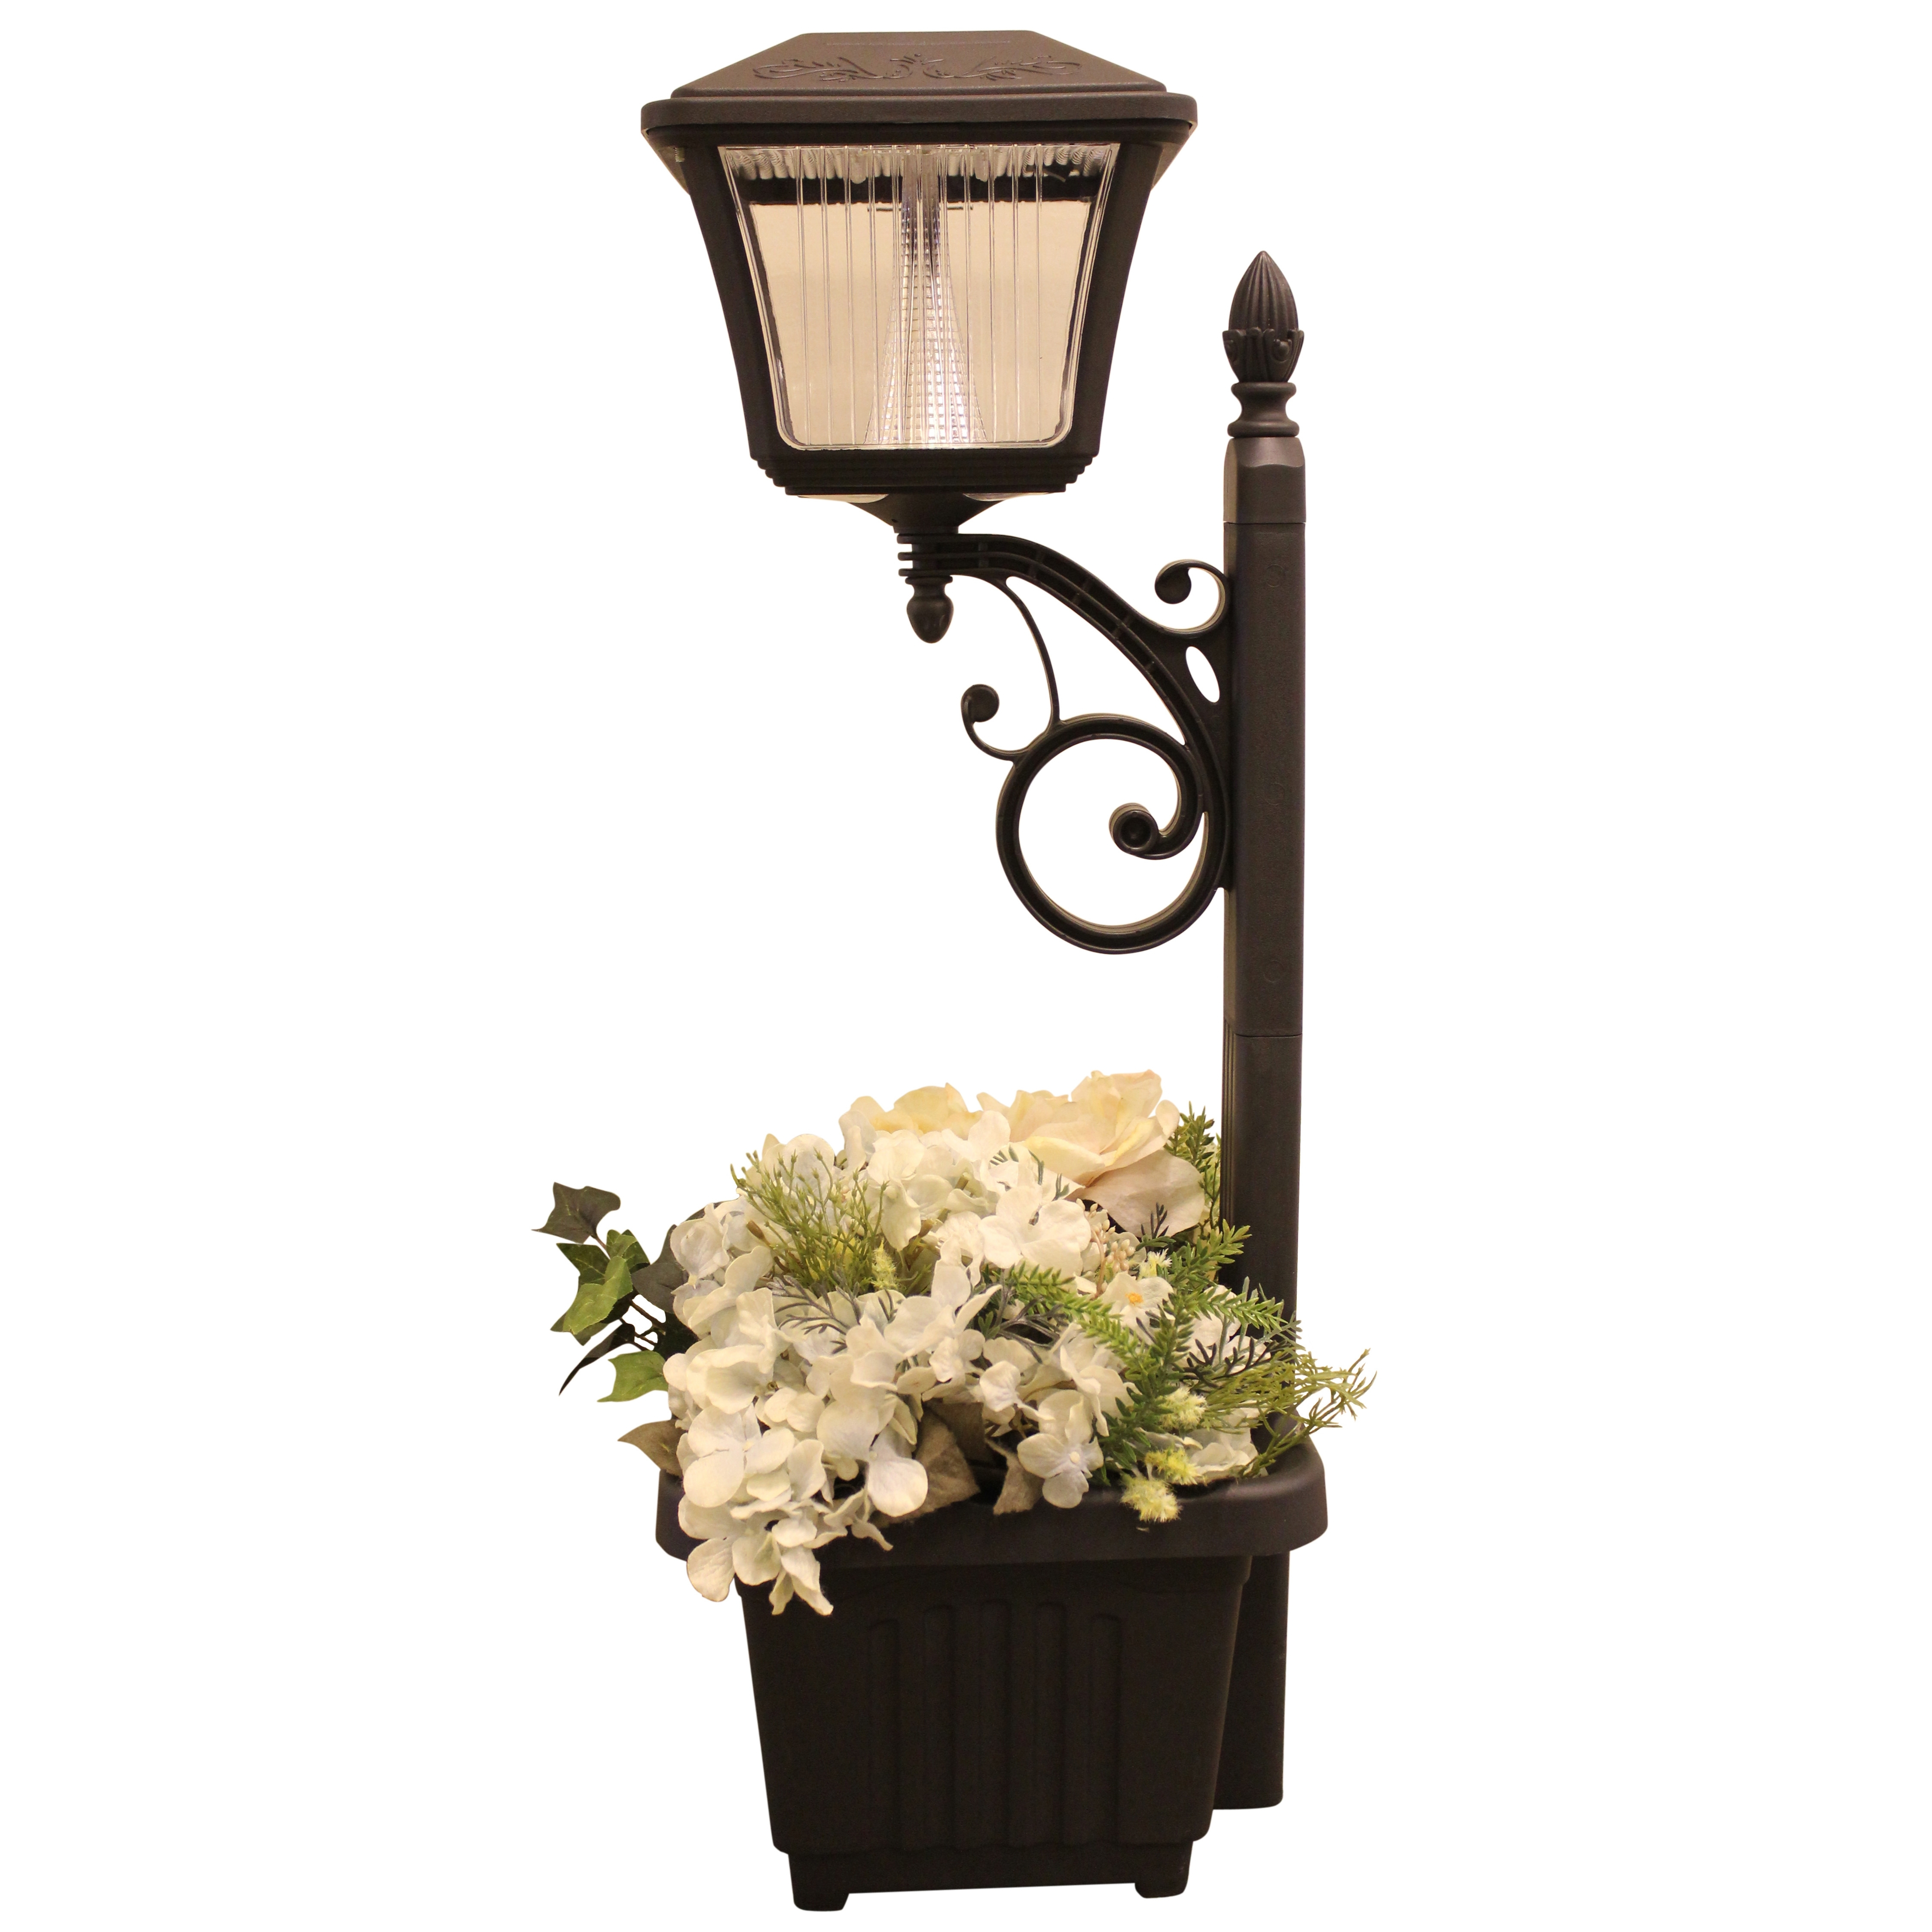 Most Recently Released Gama Sonic Led Solar 4 Light Pathway Lighting Reviews Wayfair ~ Loversiq In Outdoor And Garden String Lights At Wayfair (View 8 of 20)